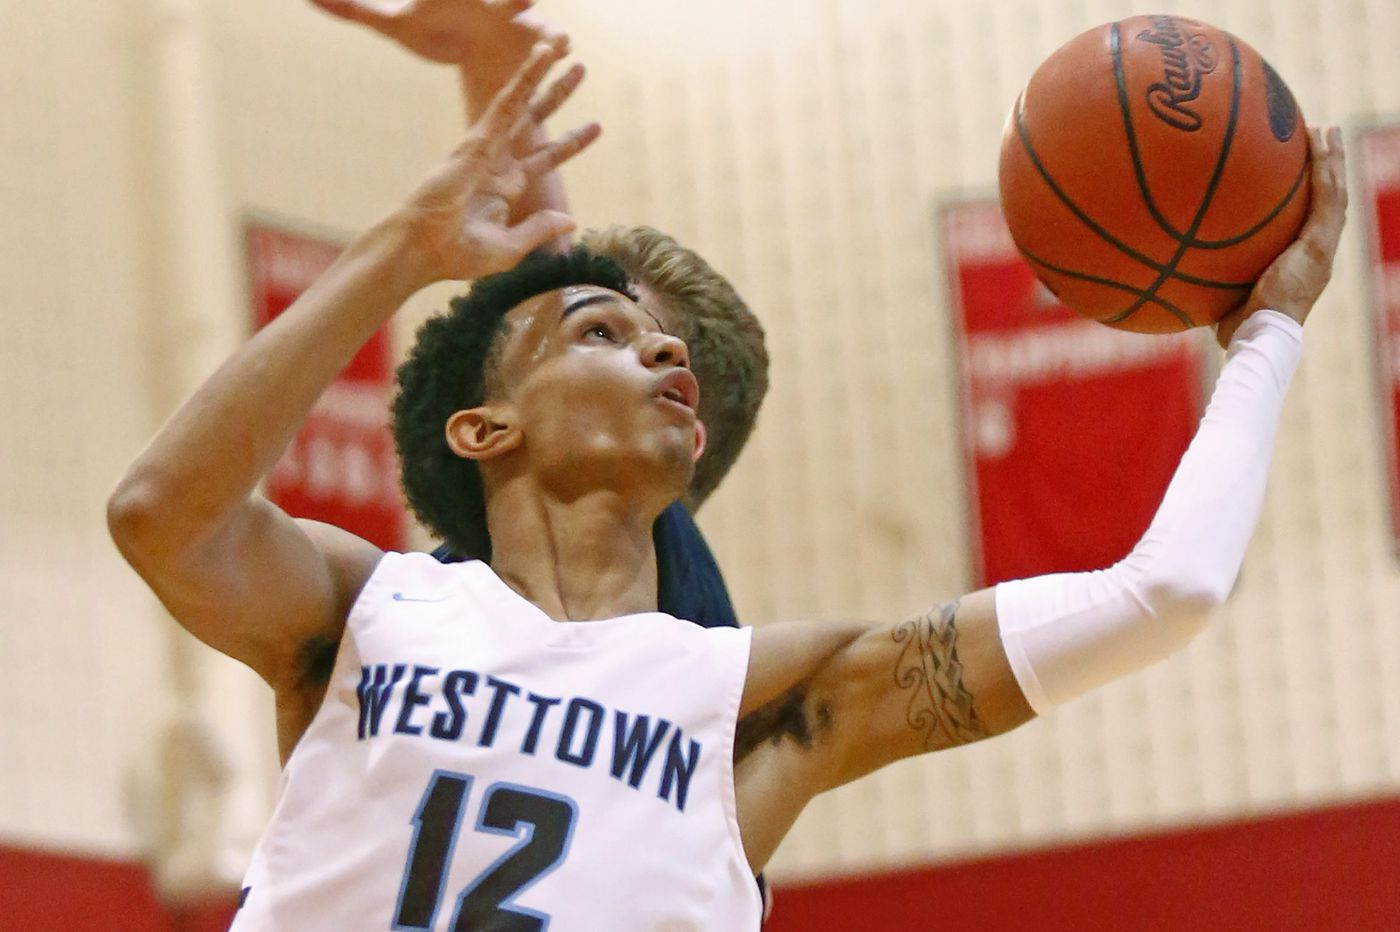 College basketball recruiting: Three local stars describe the grind